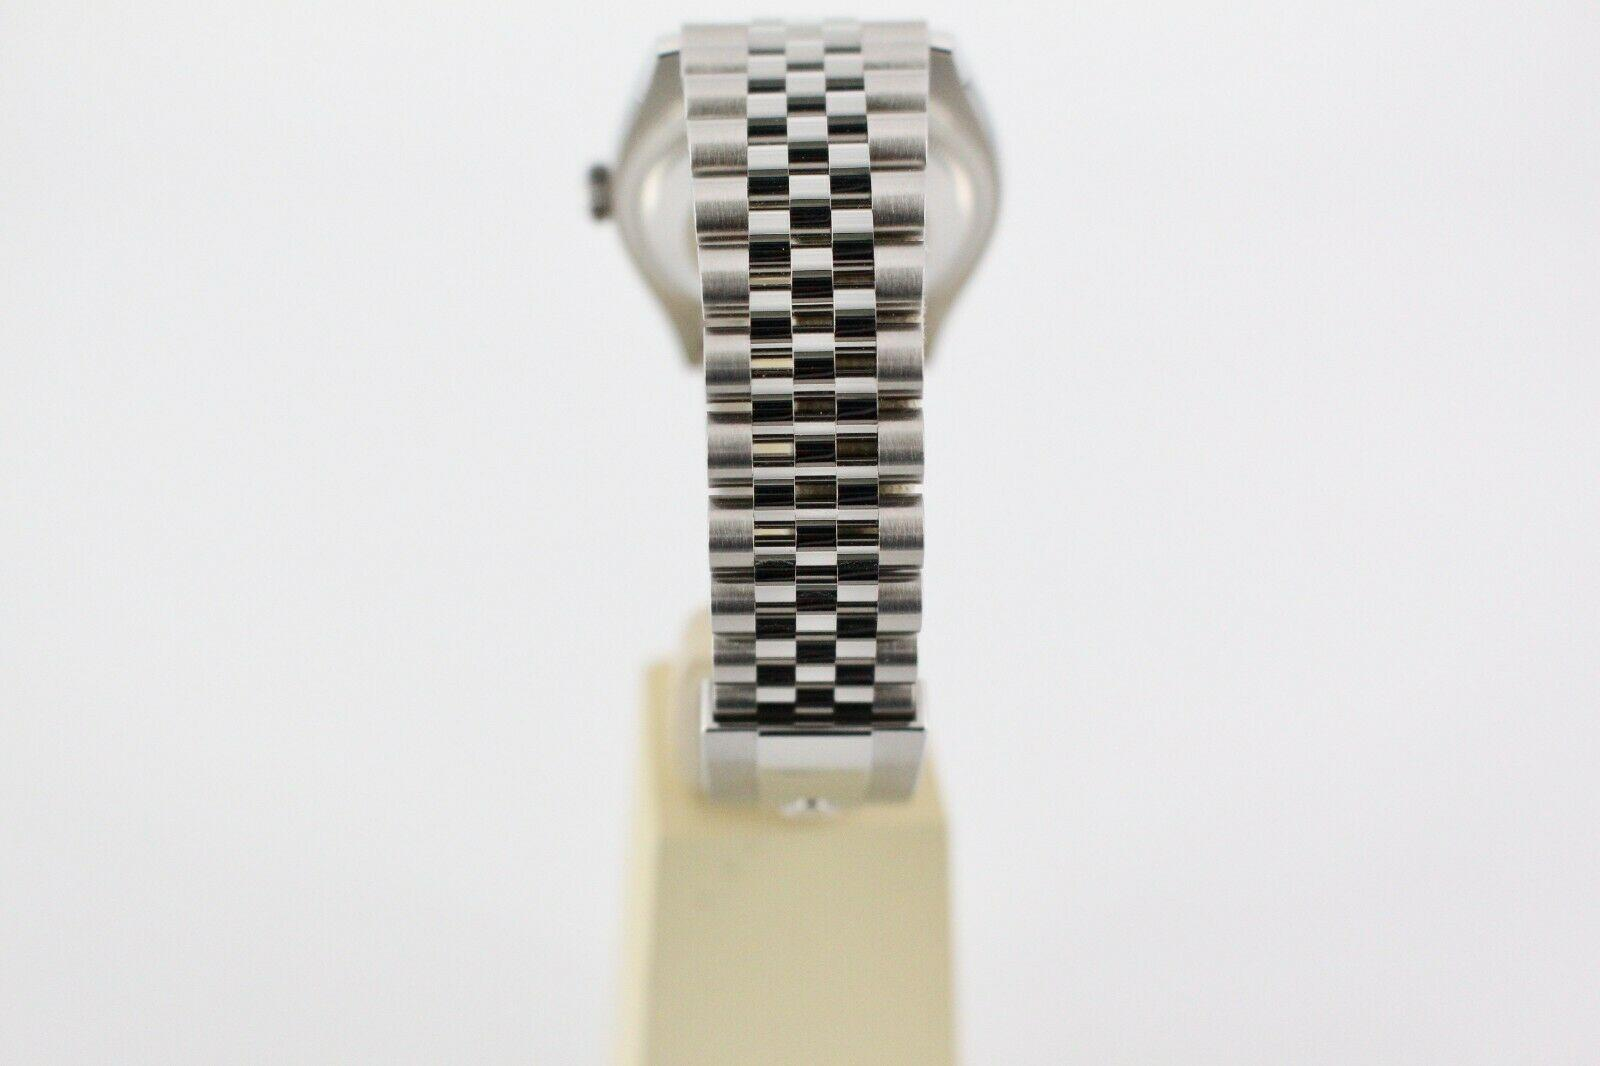 BRAND NEW Rolex Datejust 126200 Si  er Dial Stainless Steel Box Papers 18